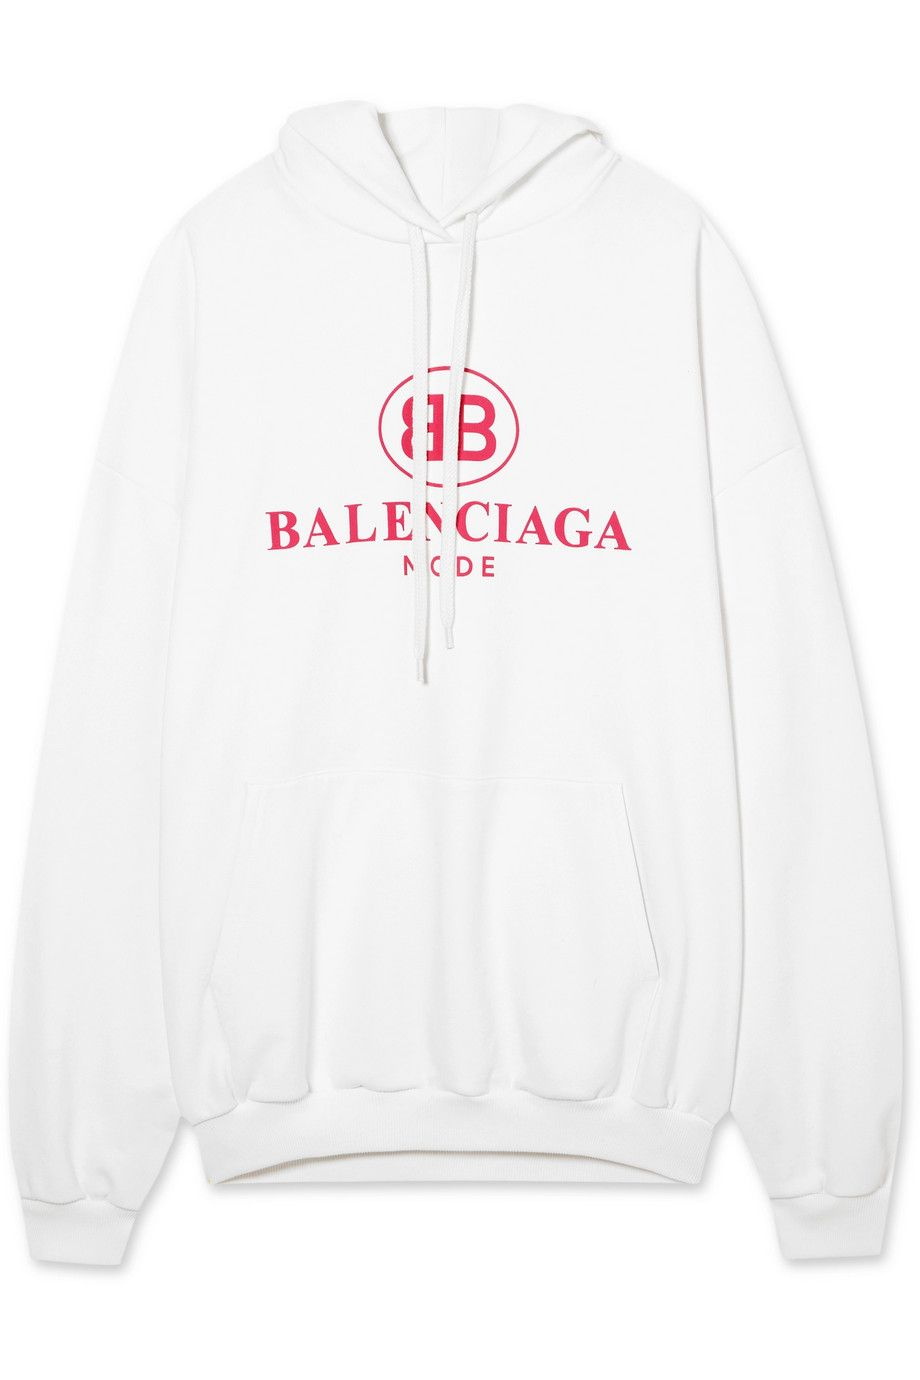 Mr Porter x Balenciaga Oversized printed cotton-jersey hooded top